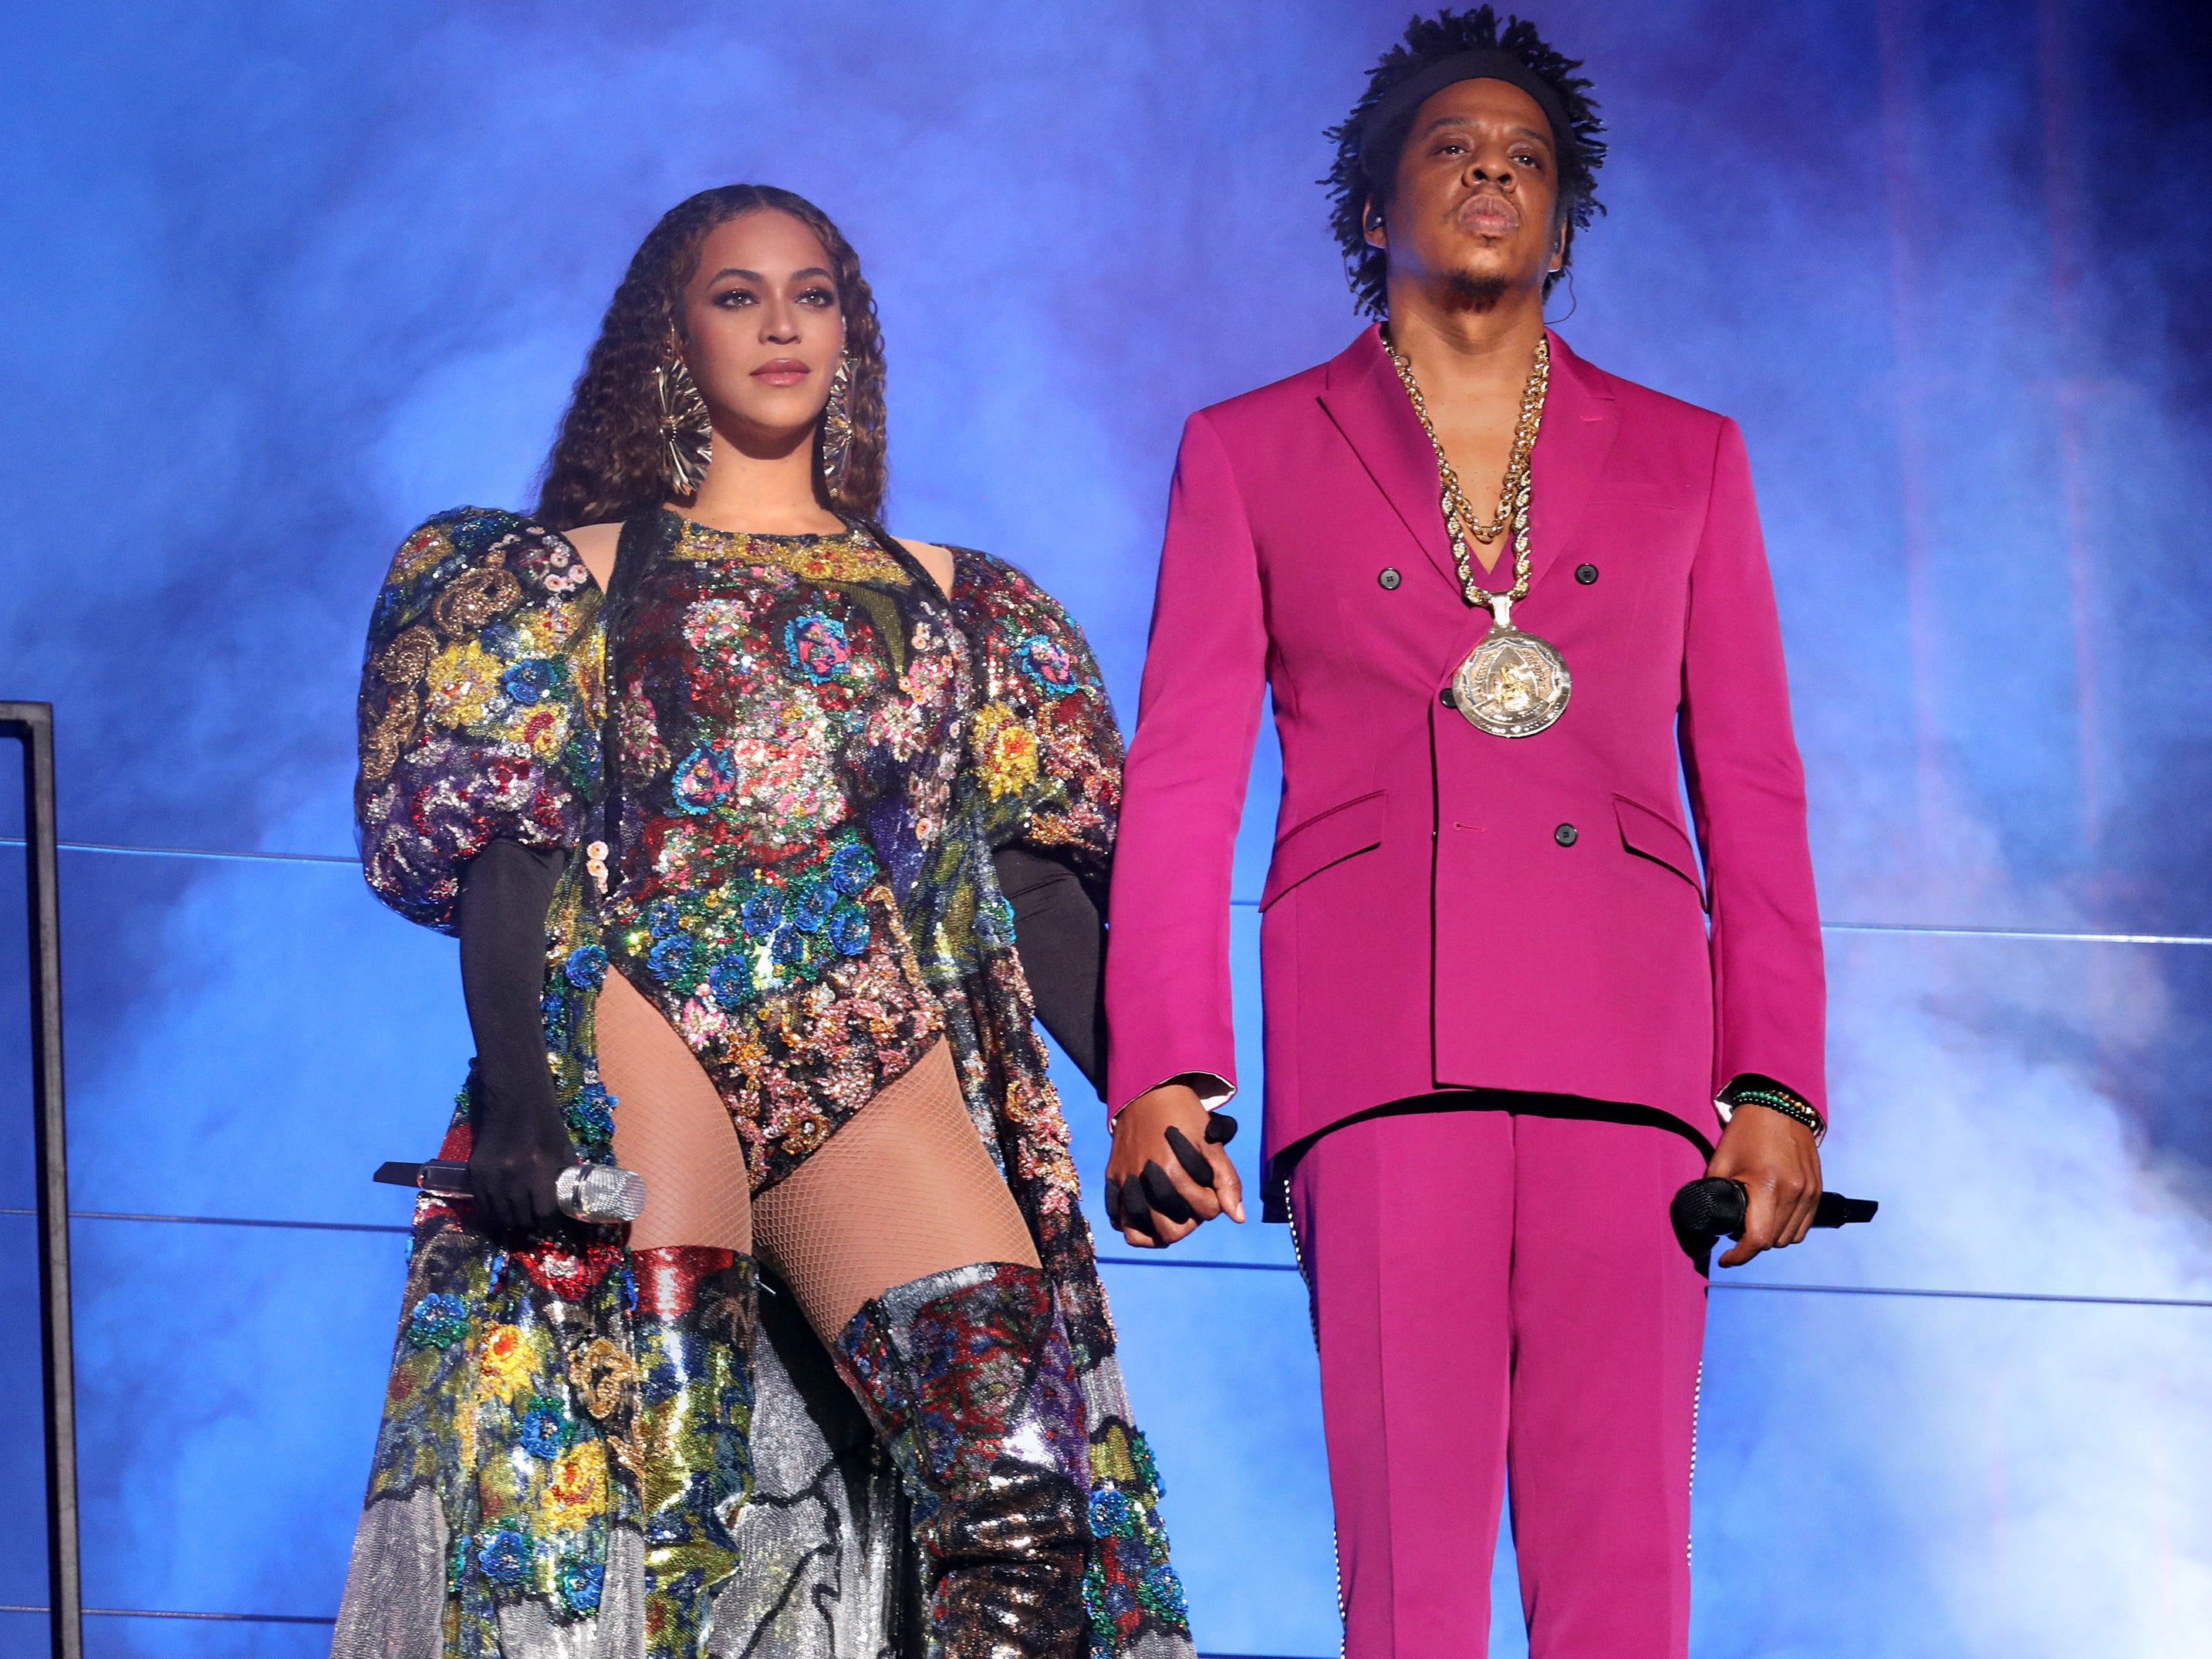 2019 Grammys snubs: Beyonce and Jay-Z, Taylor Swift, Ariana Grande and more shockers